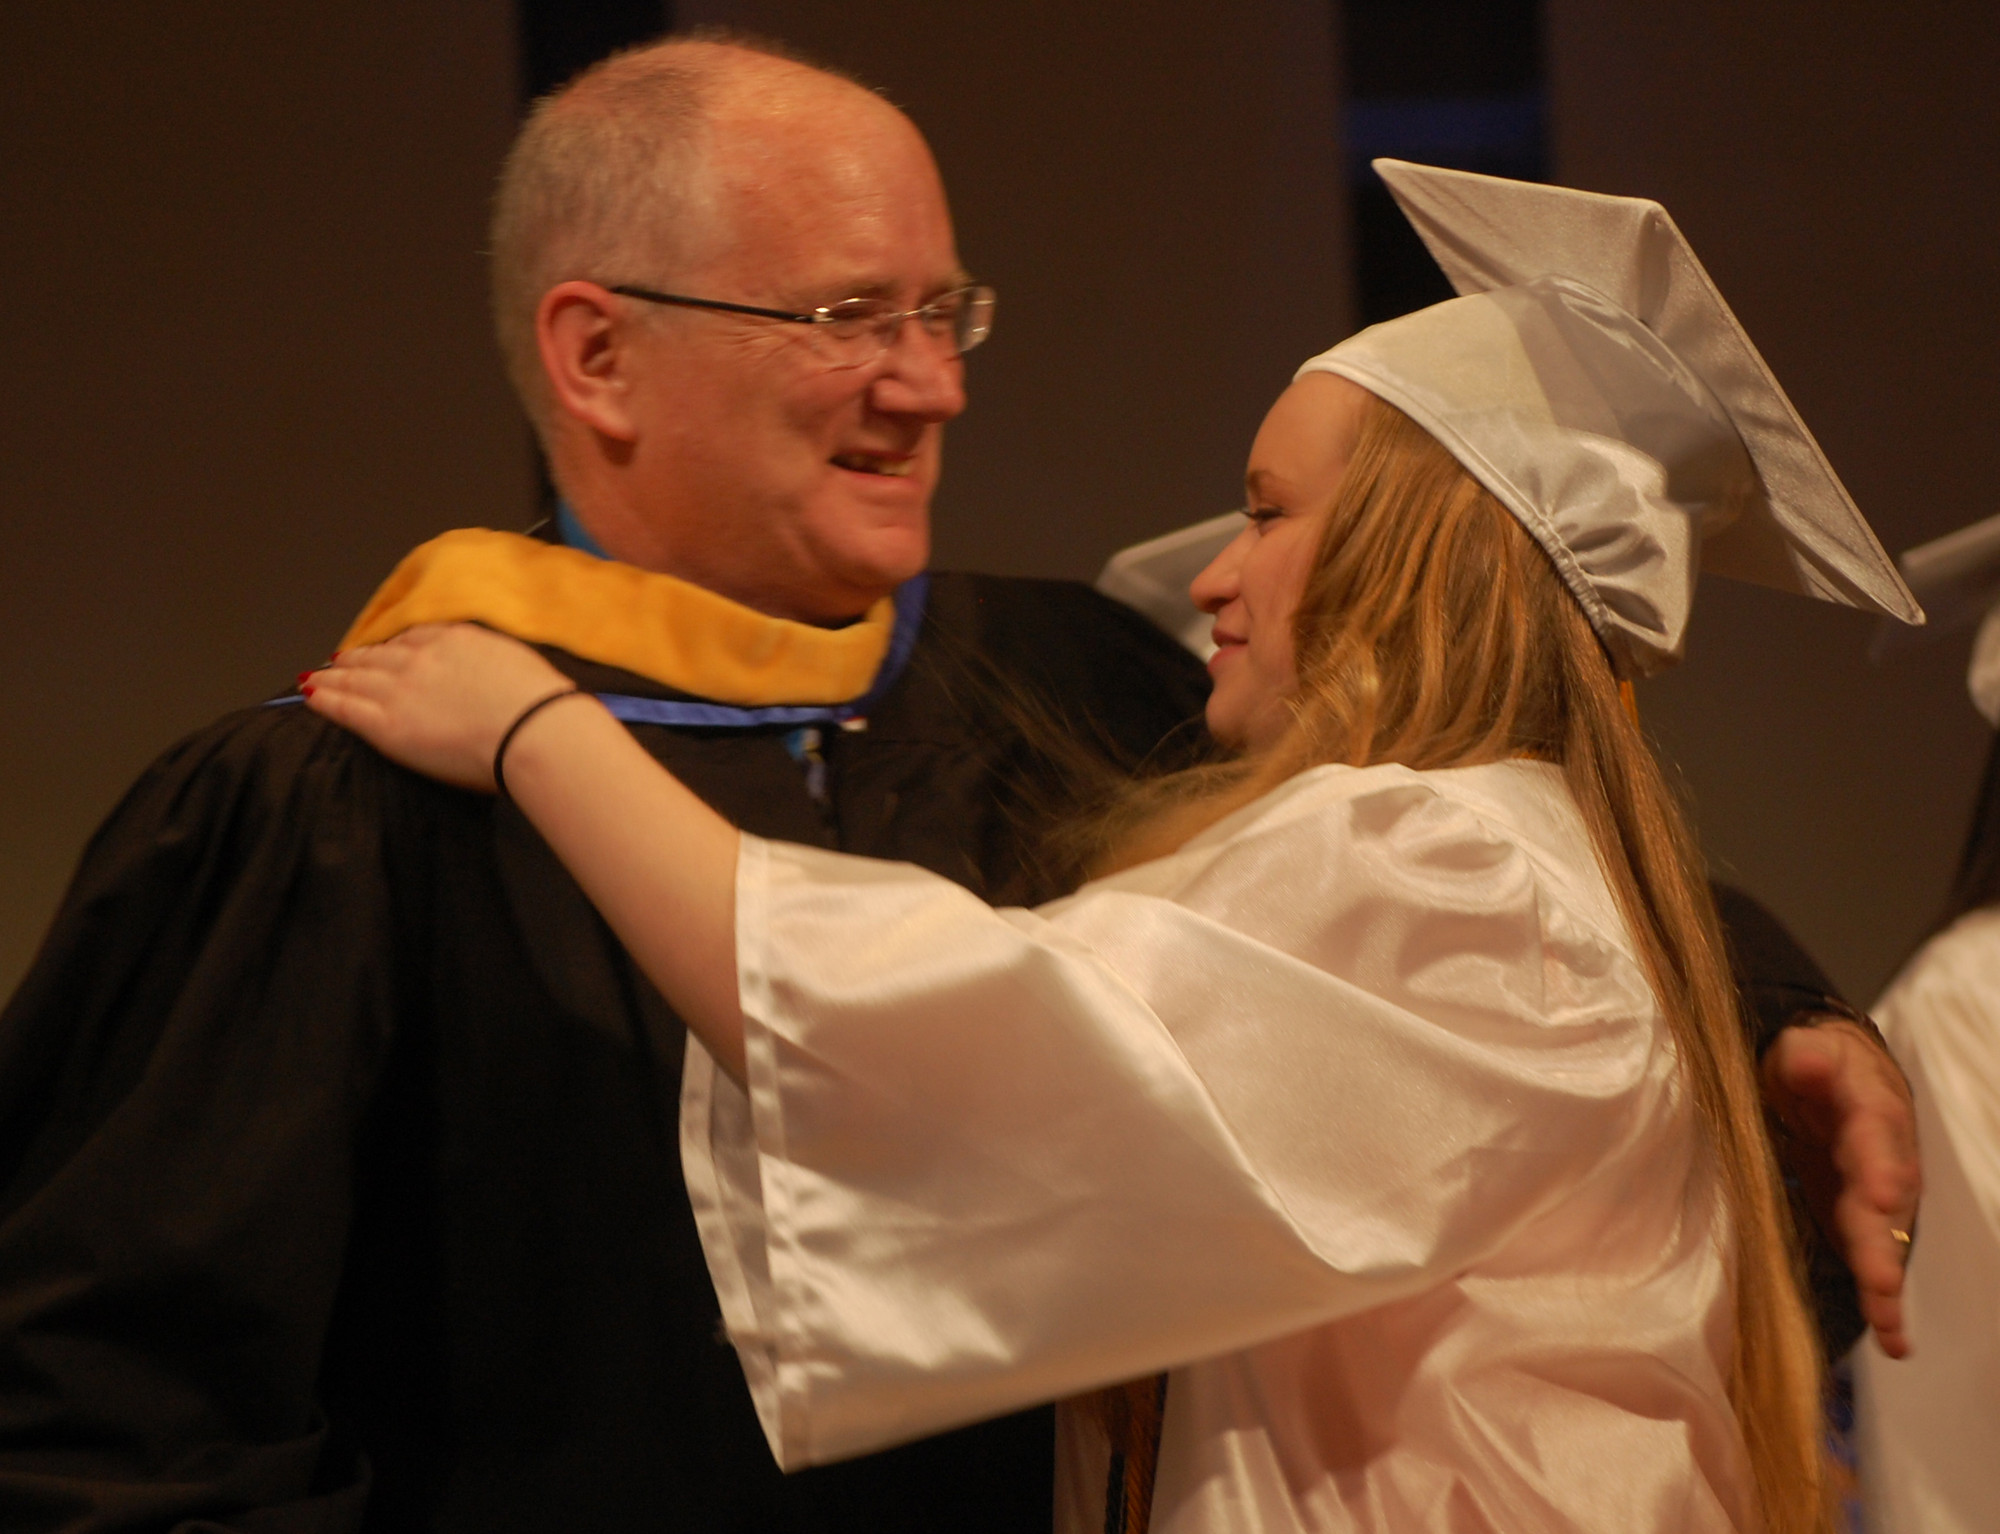 Board of Education Trustee Ken Cummings presented his daughter, Colleen, with her diploma on June 19. Her twin sister, Julia, followed her across the stage.